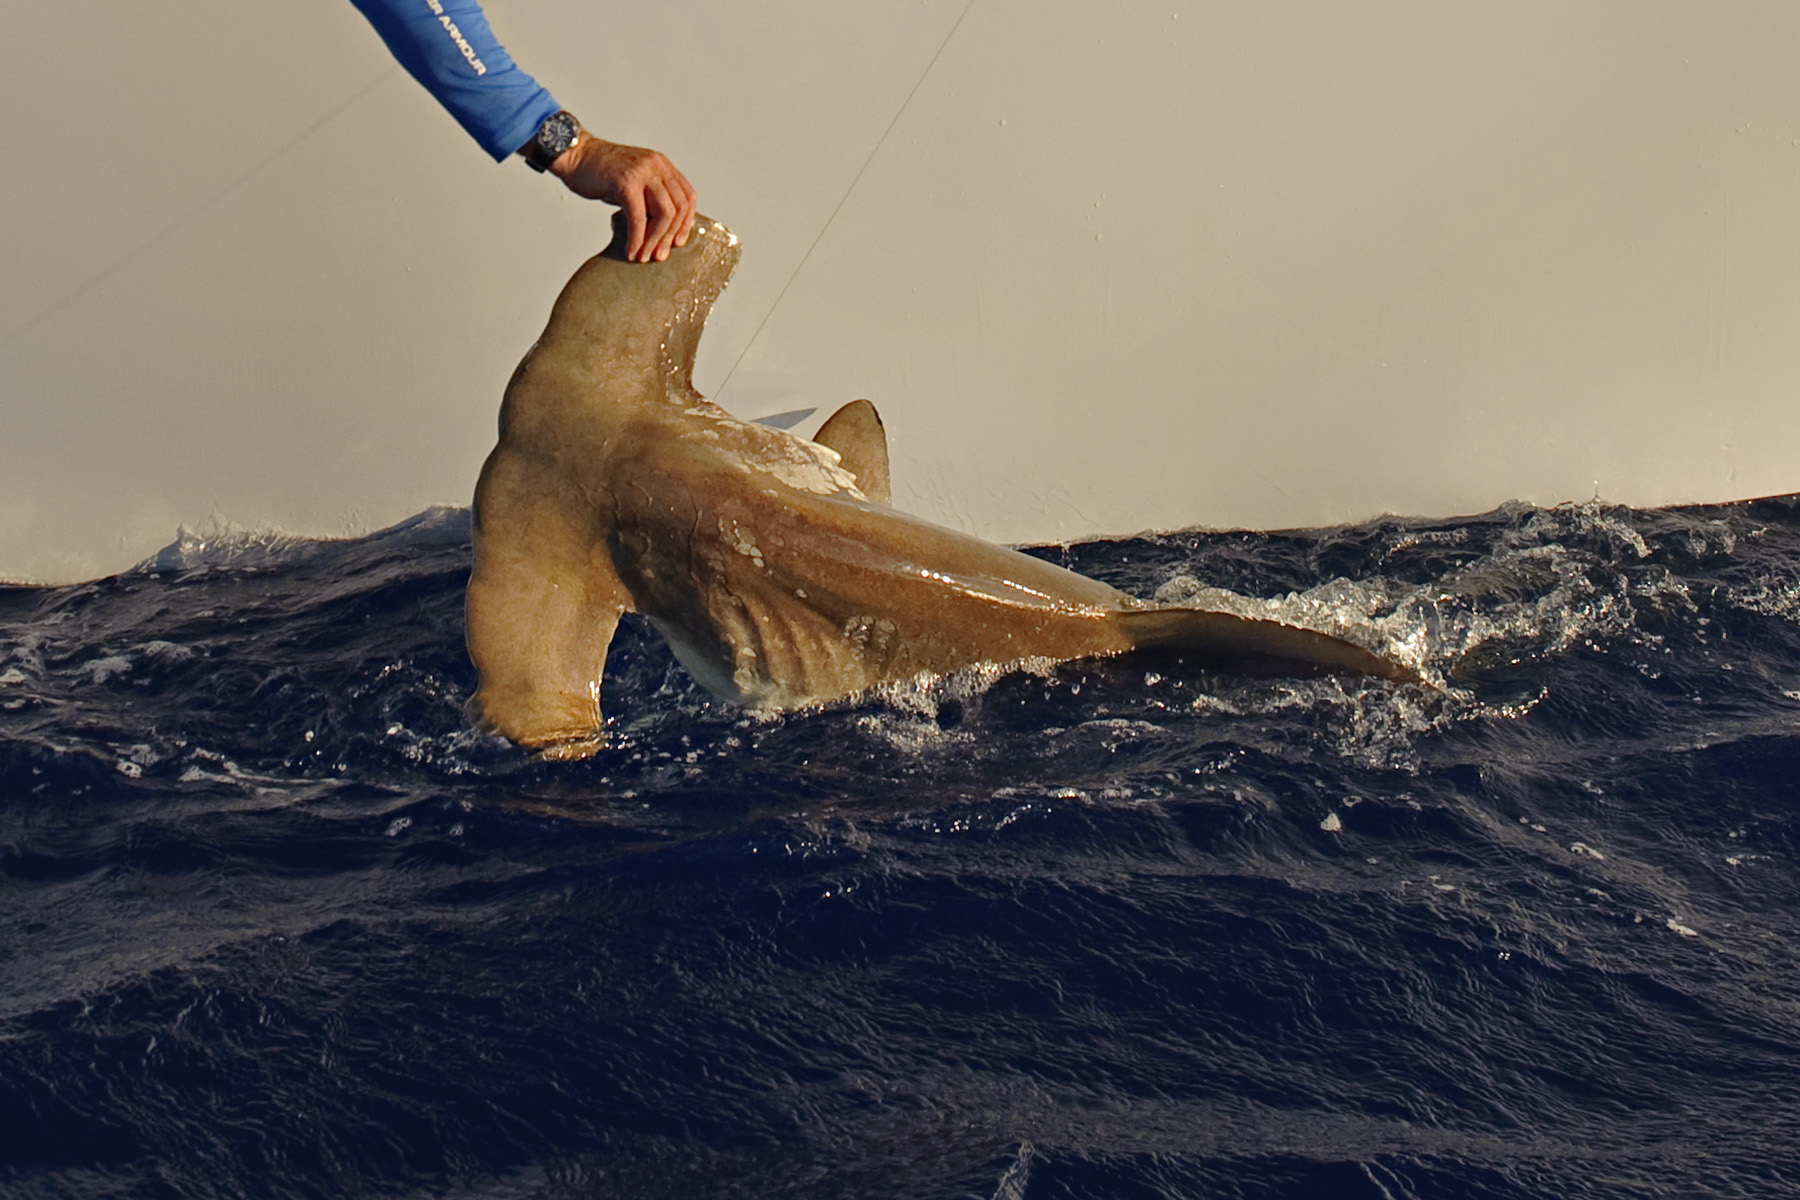 An offshore Hammerhead Shark ready for release. Nikon D700, 44mm, f/8, 1/640 sec with Into the Blue